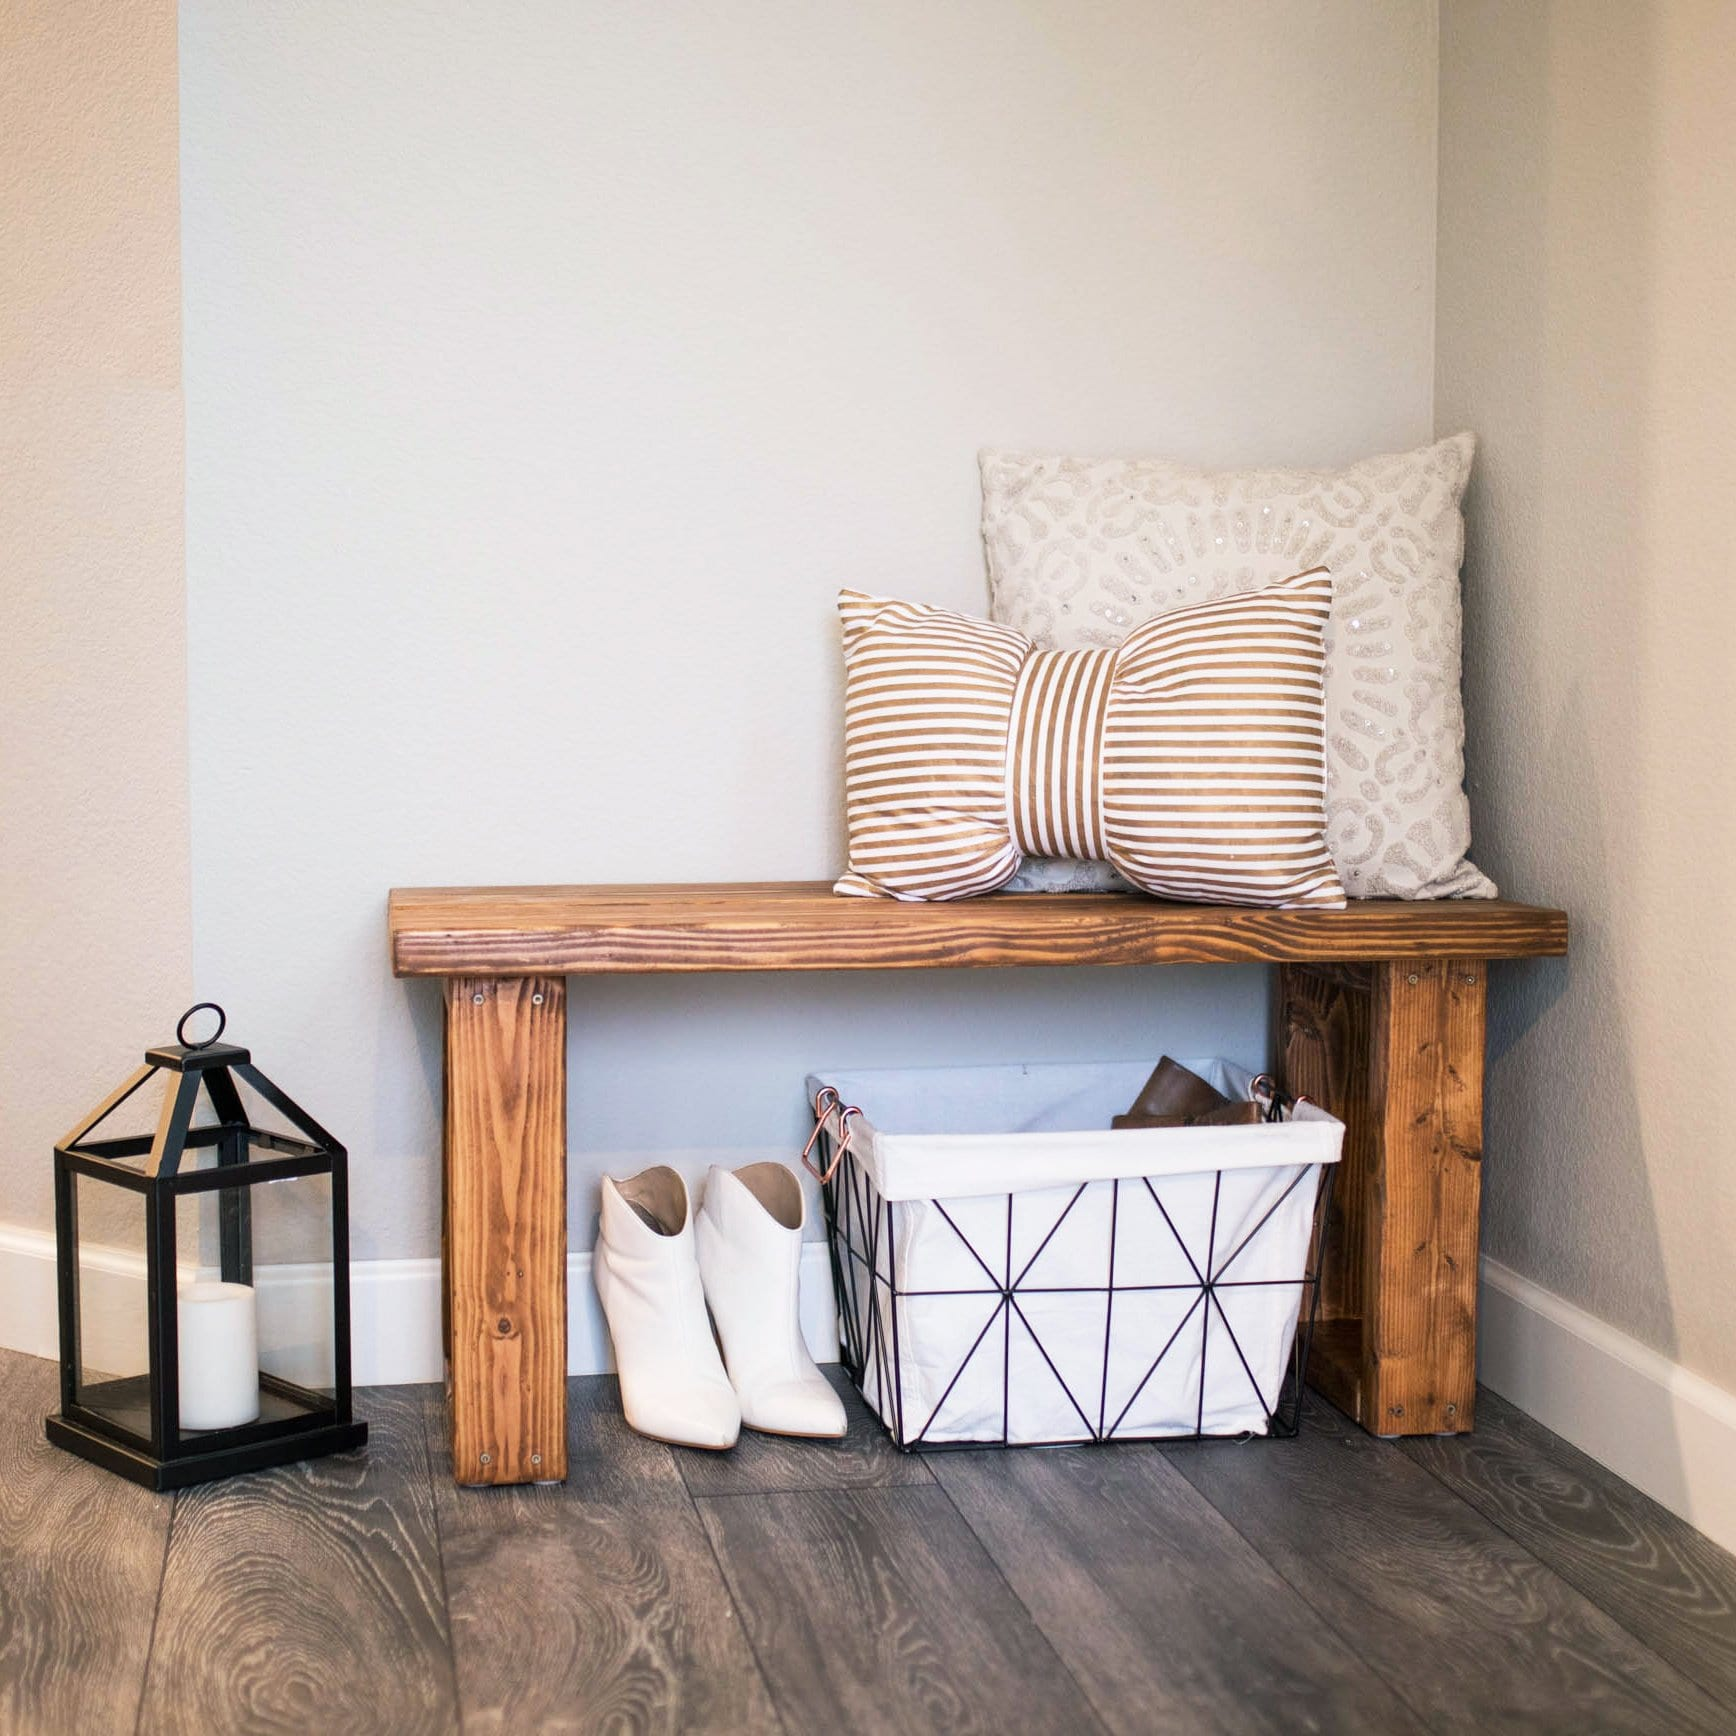 Make This Gorgeous Diy Entryway Bench For Under 12 Never Skip Brunch